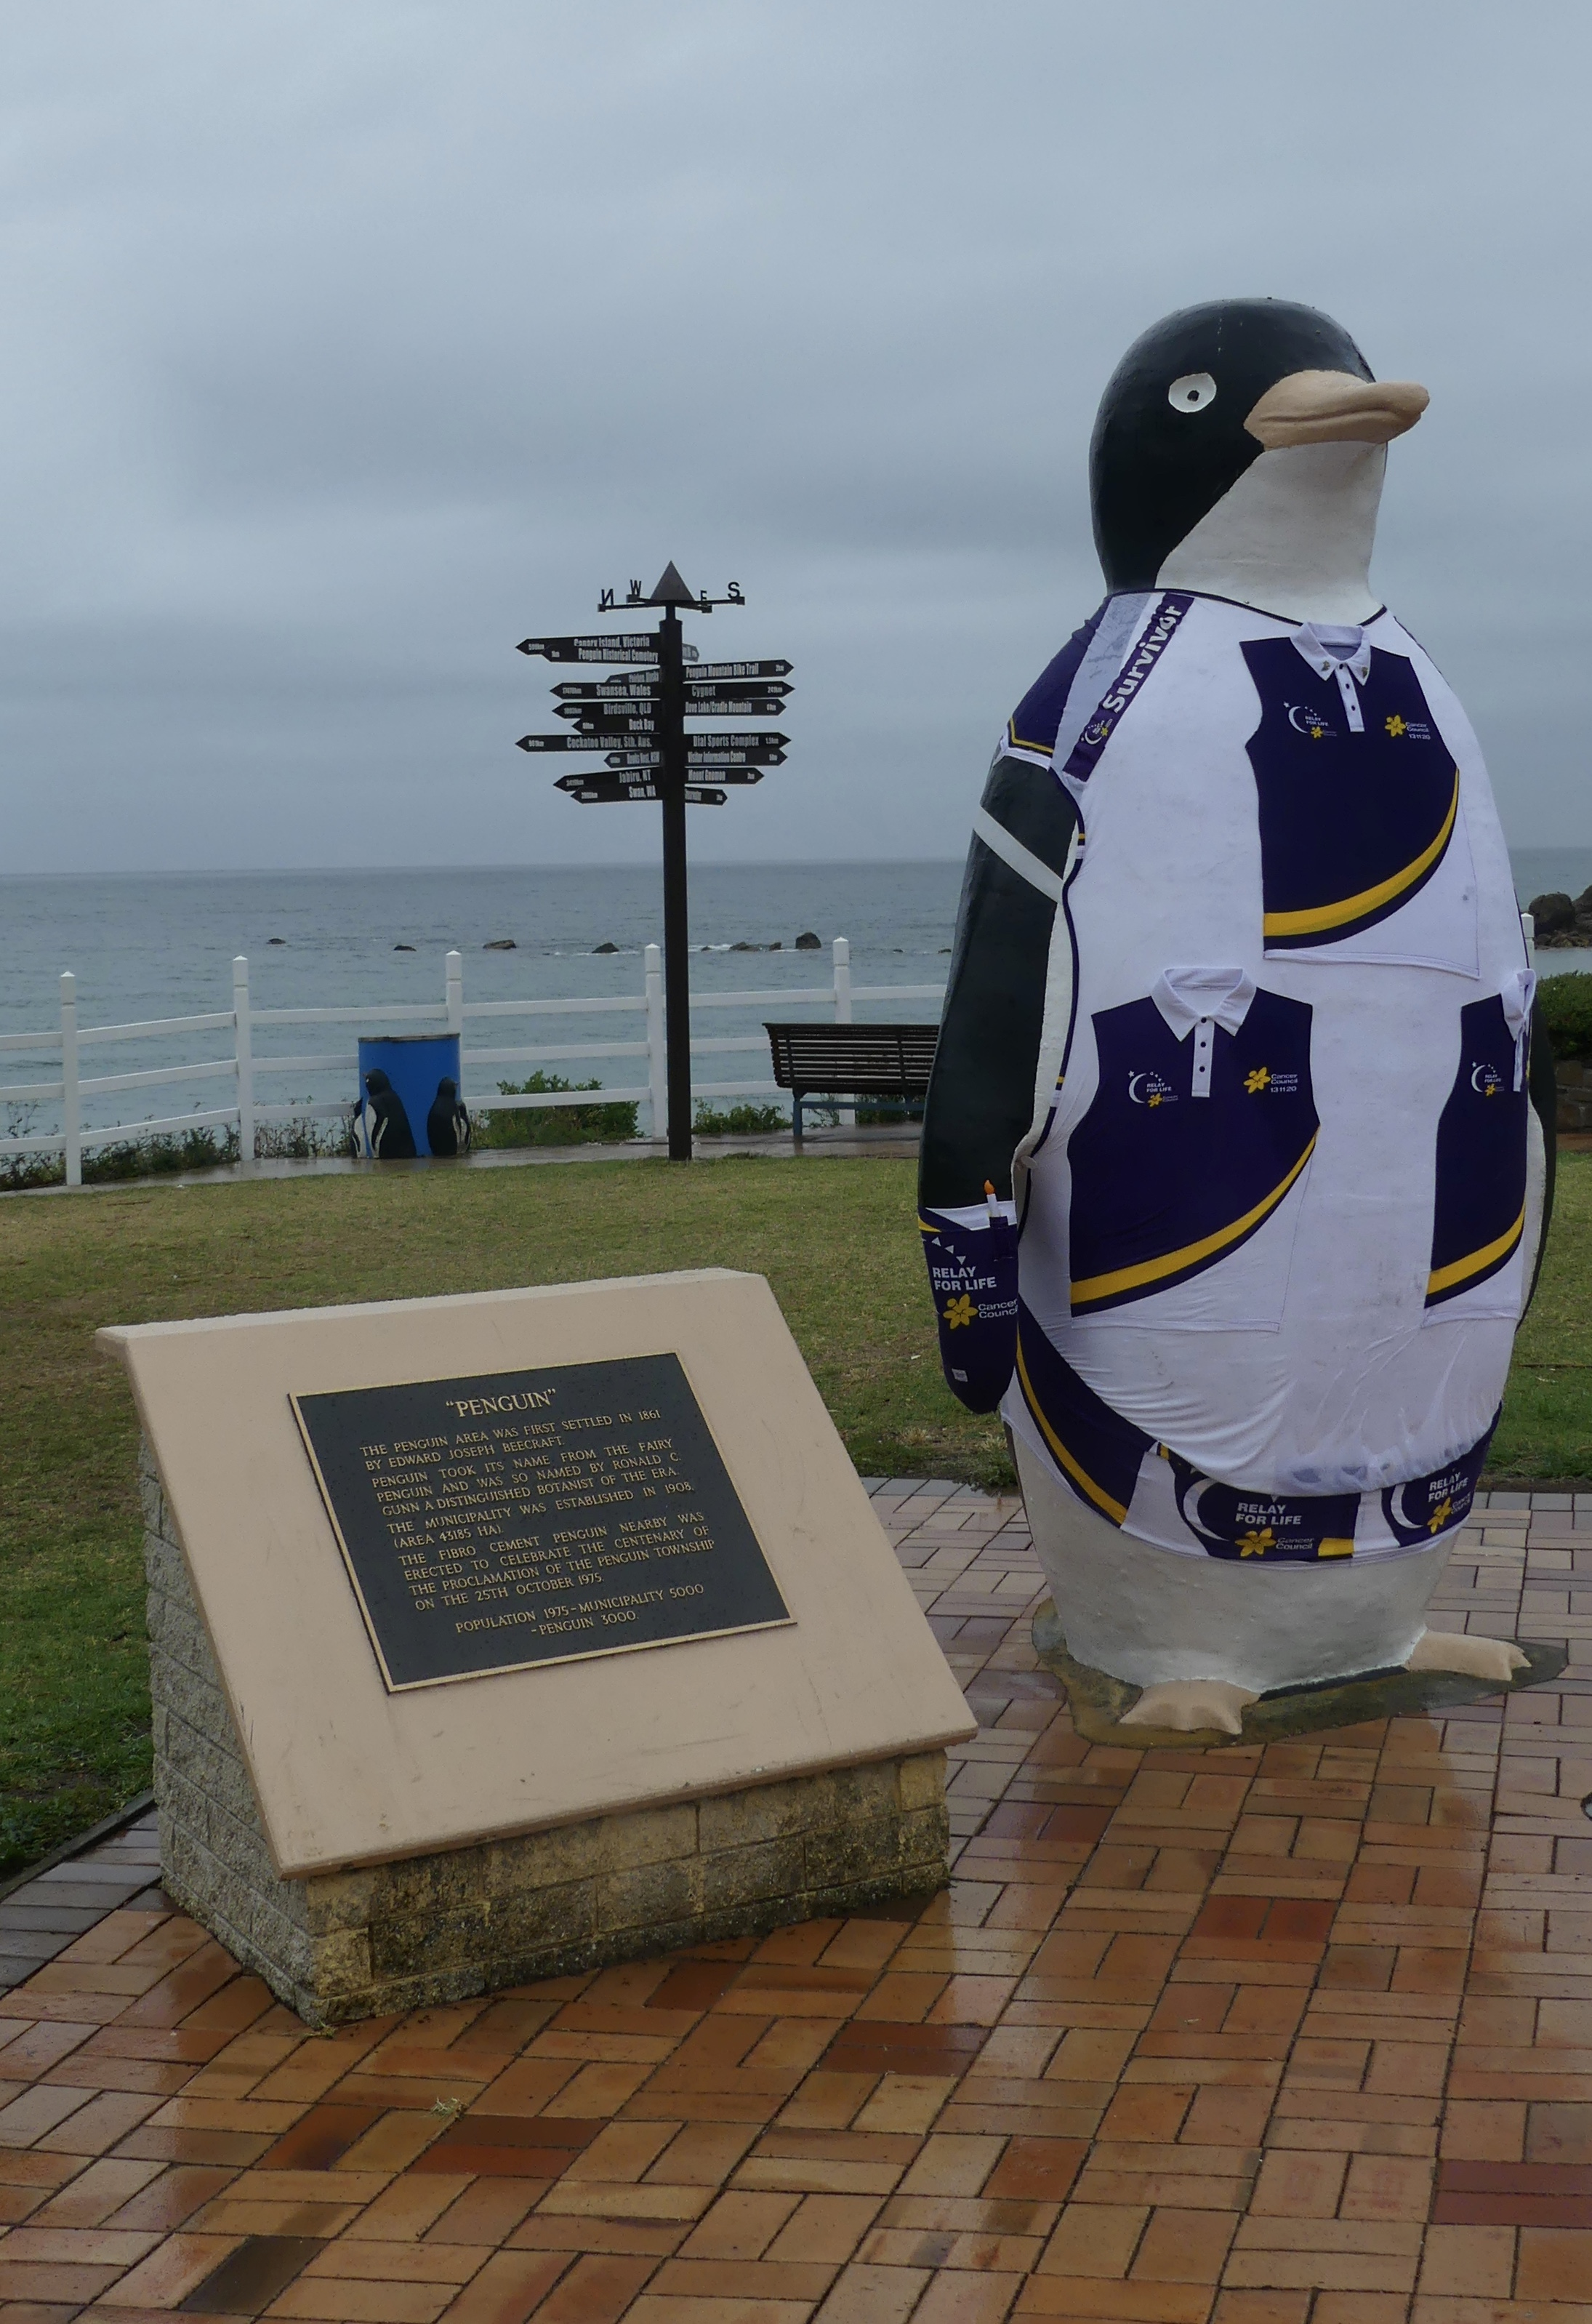 The Big Penguin supporting Relay for Life